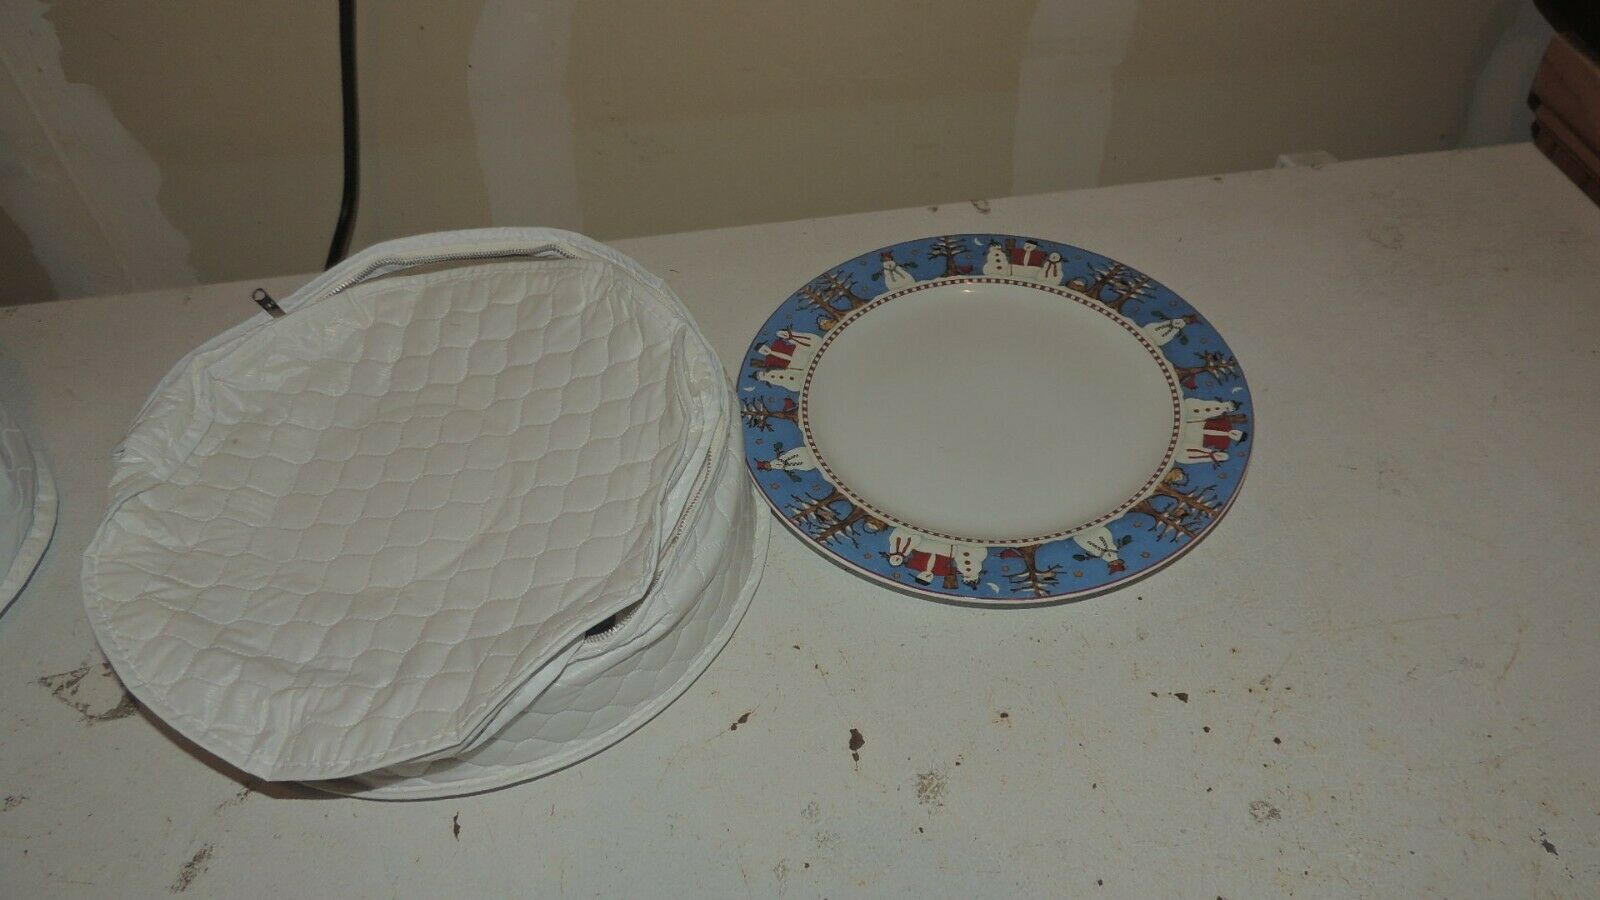 Vintage ONEIDA Sakura Debbie Mumm Holiday SNOWMAN 10.75 Dinner Plates Set Of 4 - $36.00